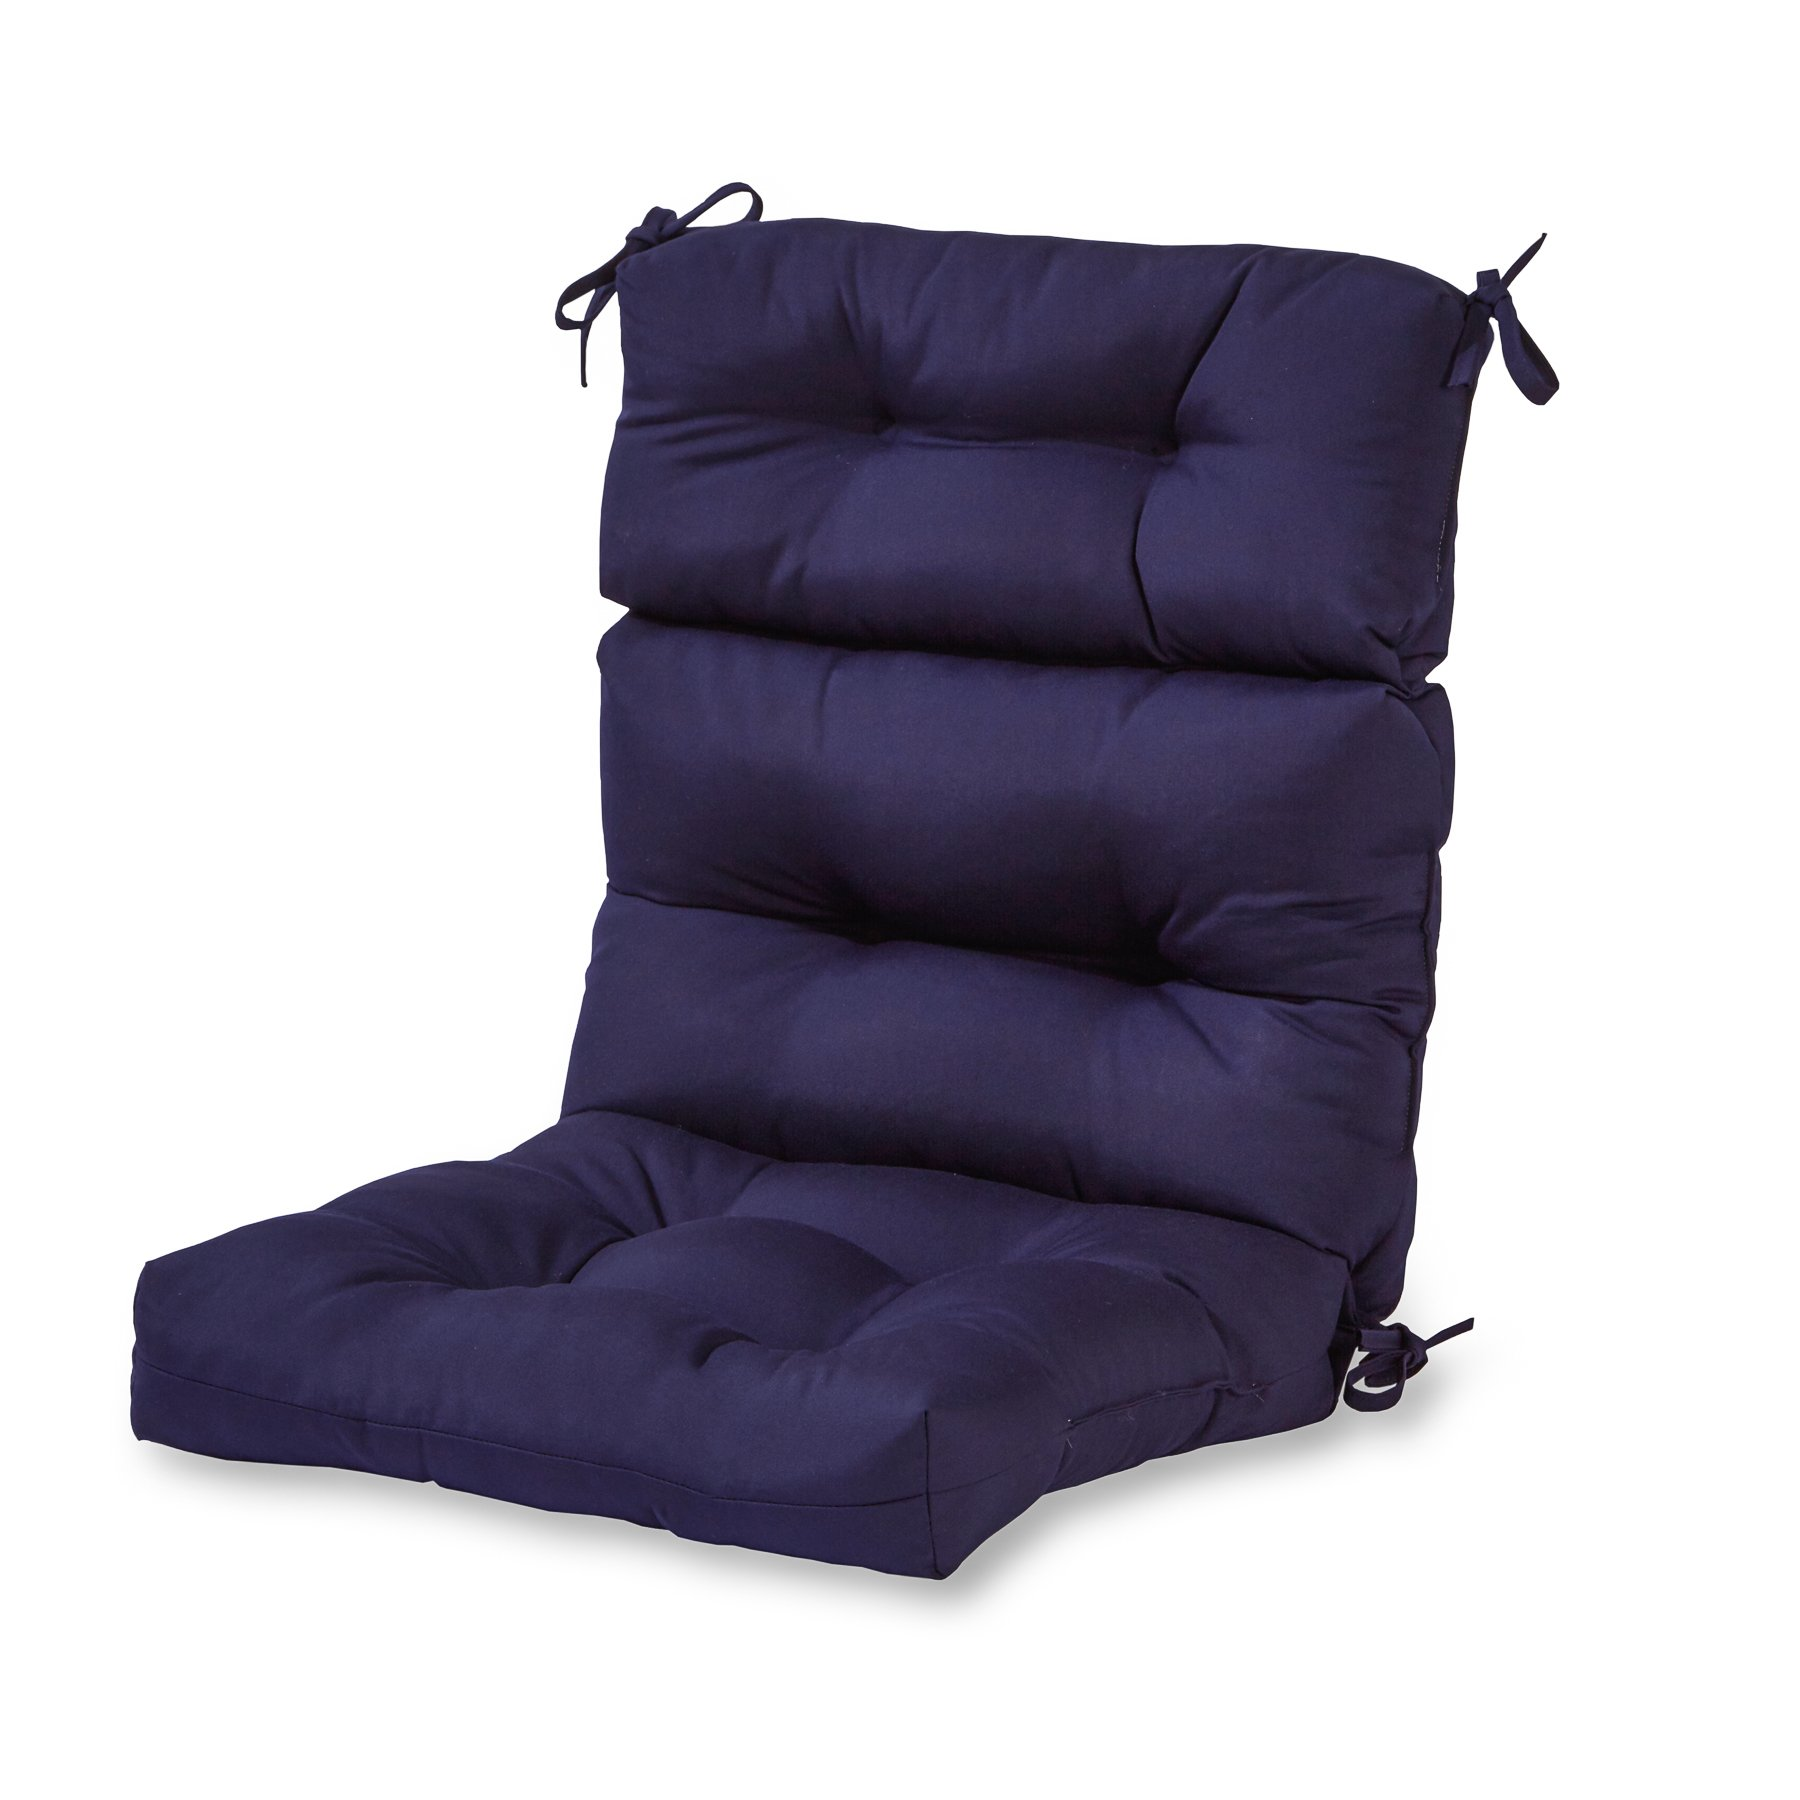 Greendale Home Fashions Outdoor High Back Chair Cushion, Navy